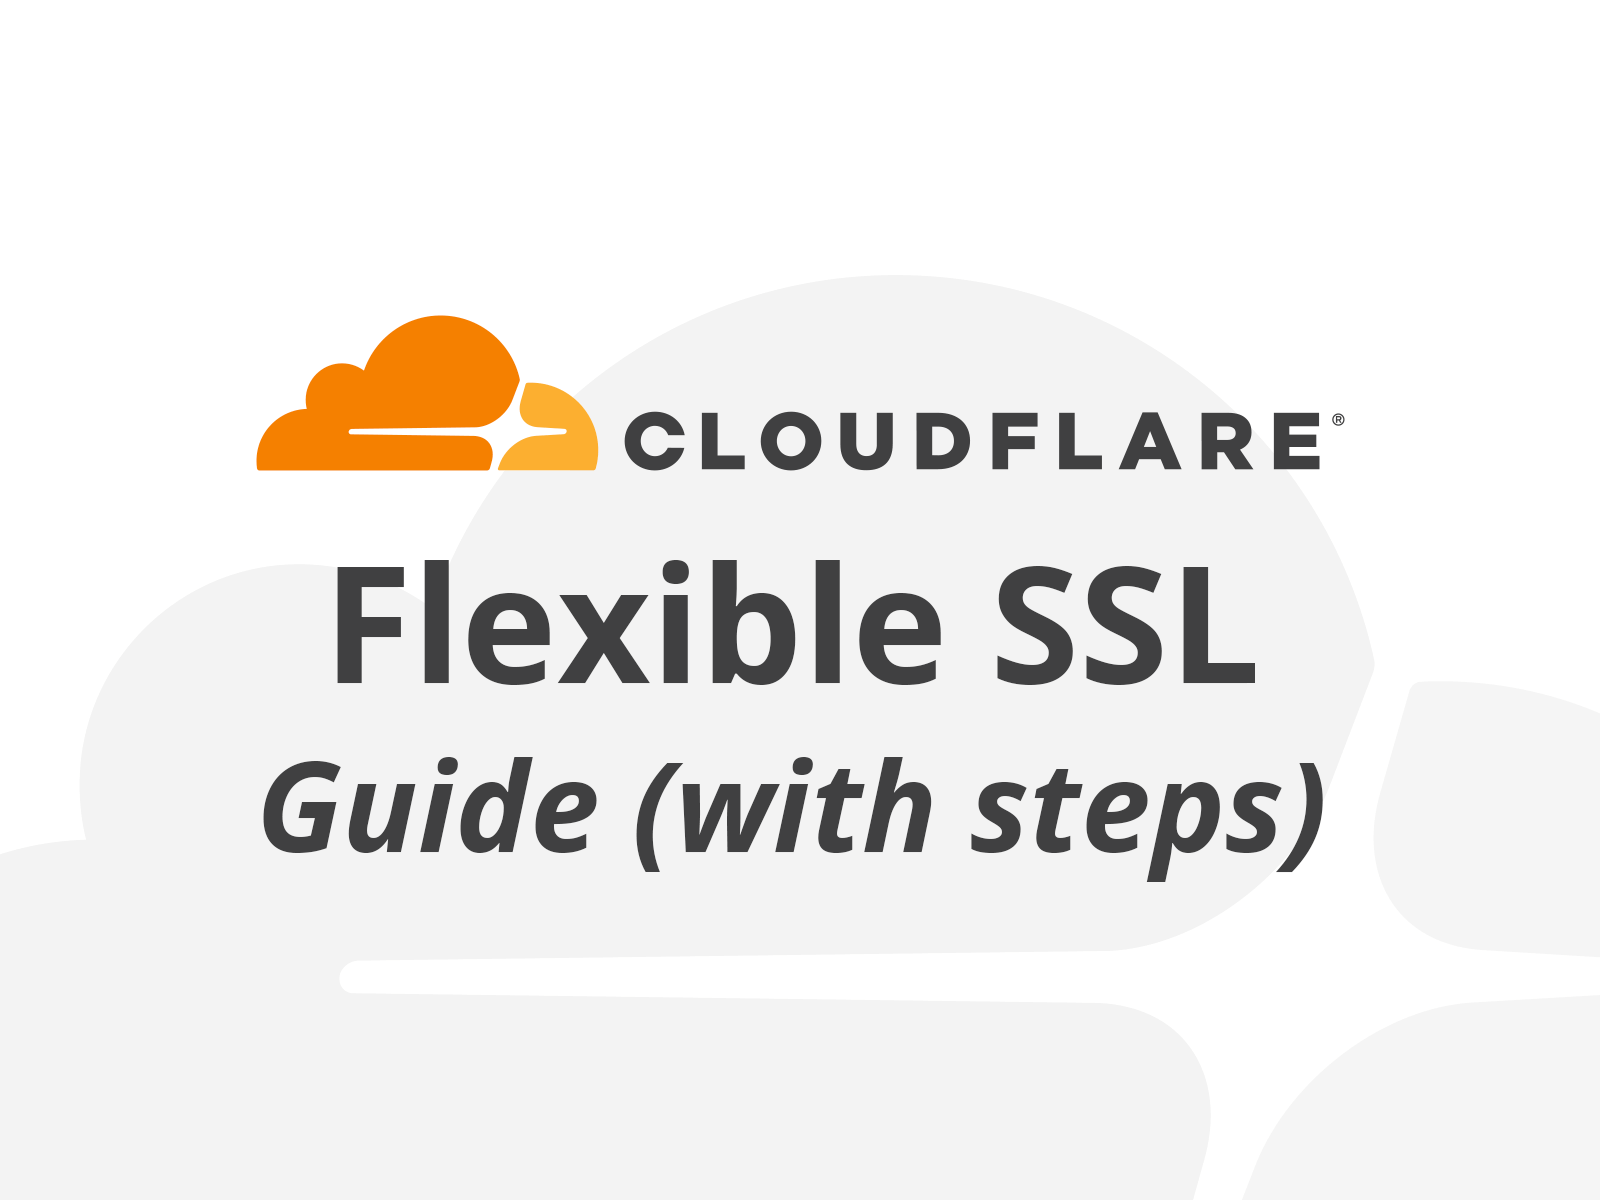 How to add CloudFlare SSL (Flexible)